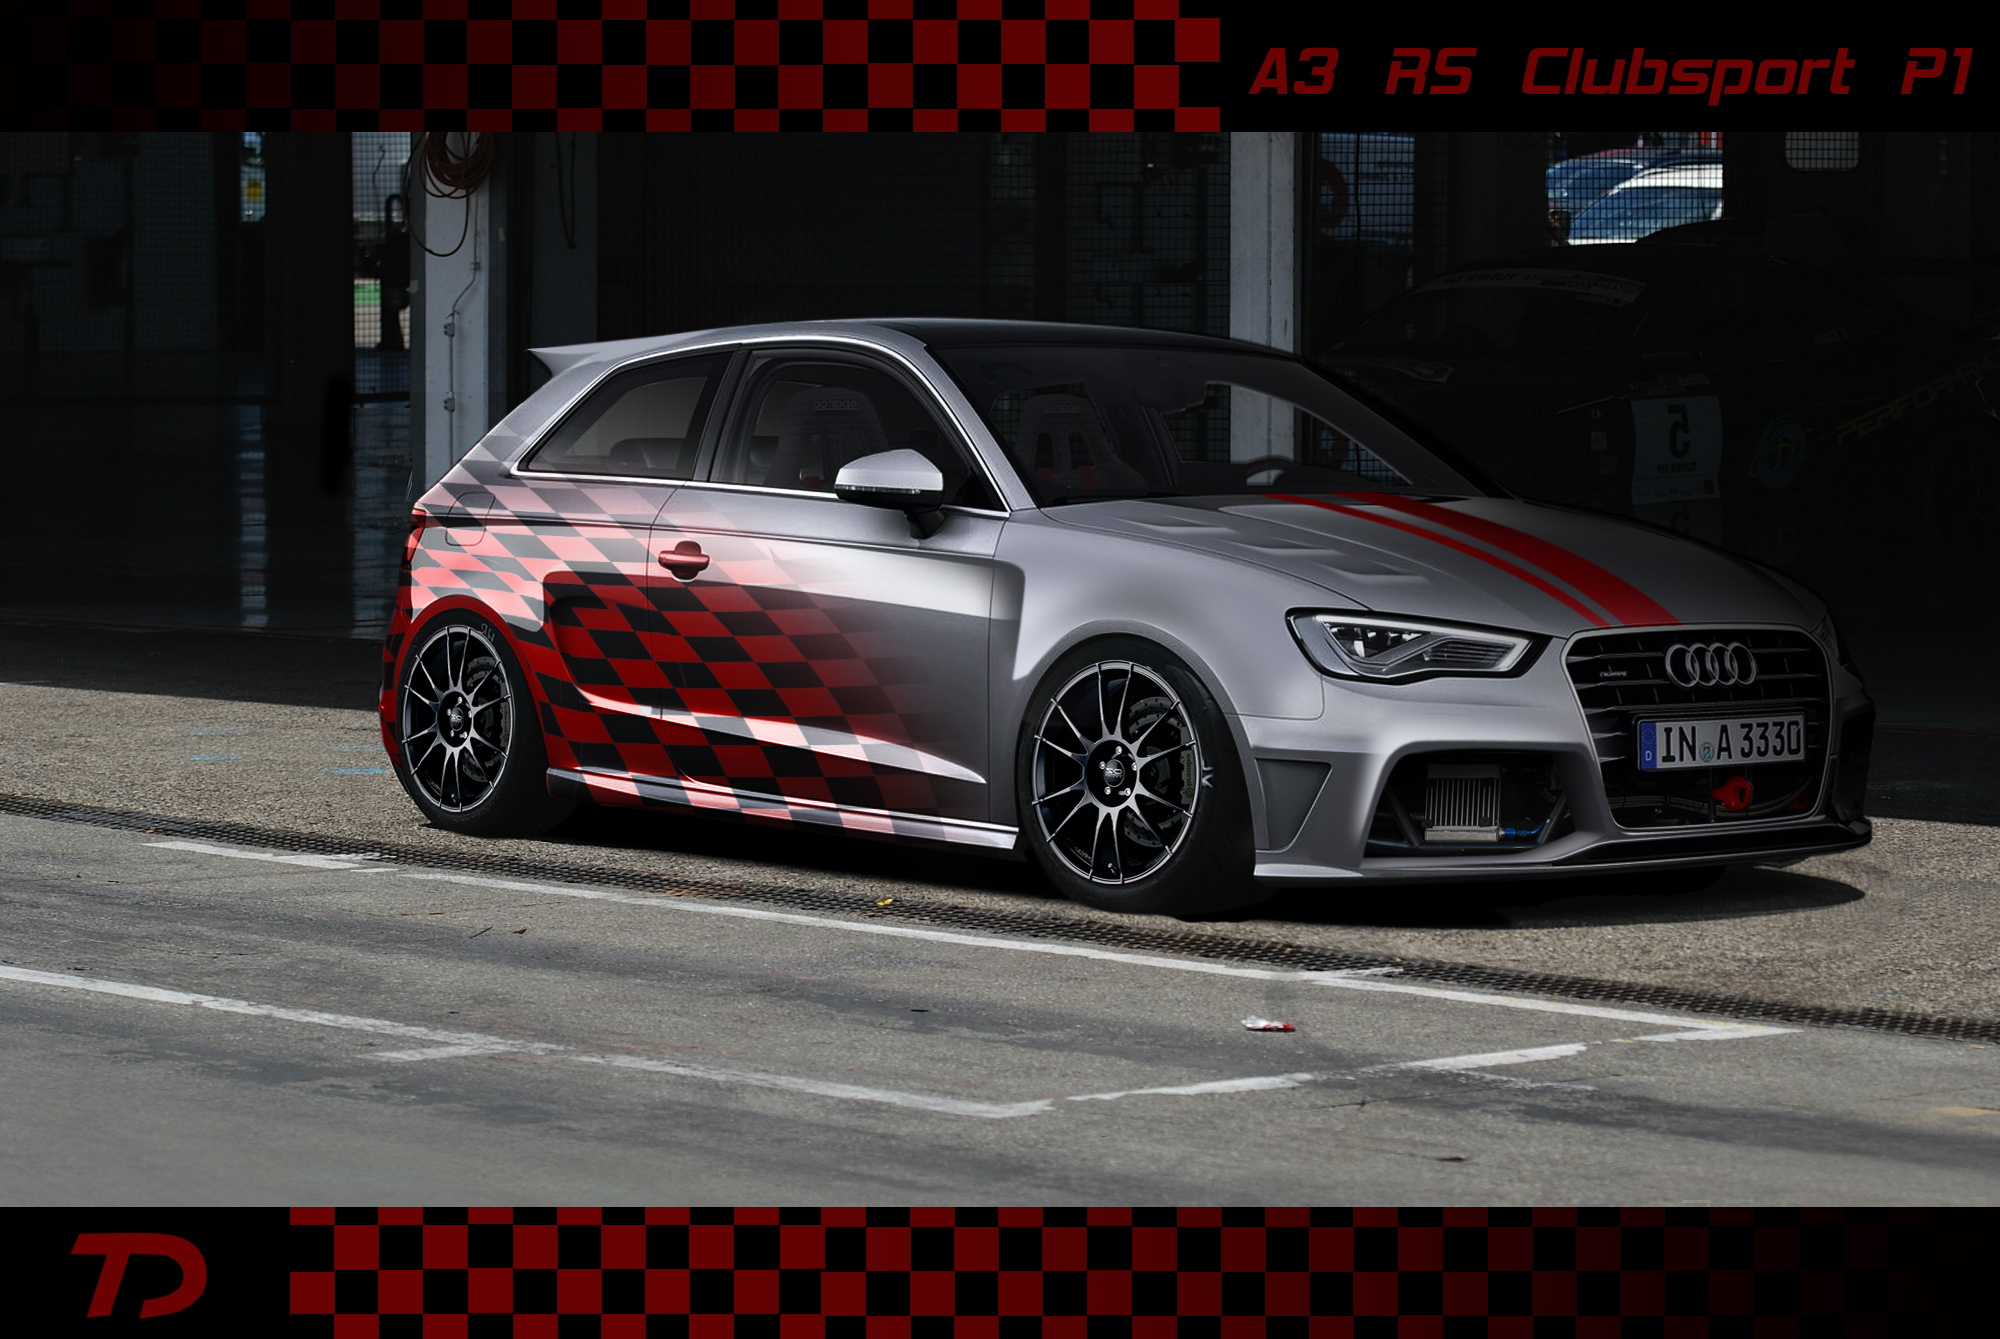 audi a3 rs clubsport p1 by teofilodesign on deviantart. Black Bedroom Furniture Sets. Home Design Ideas